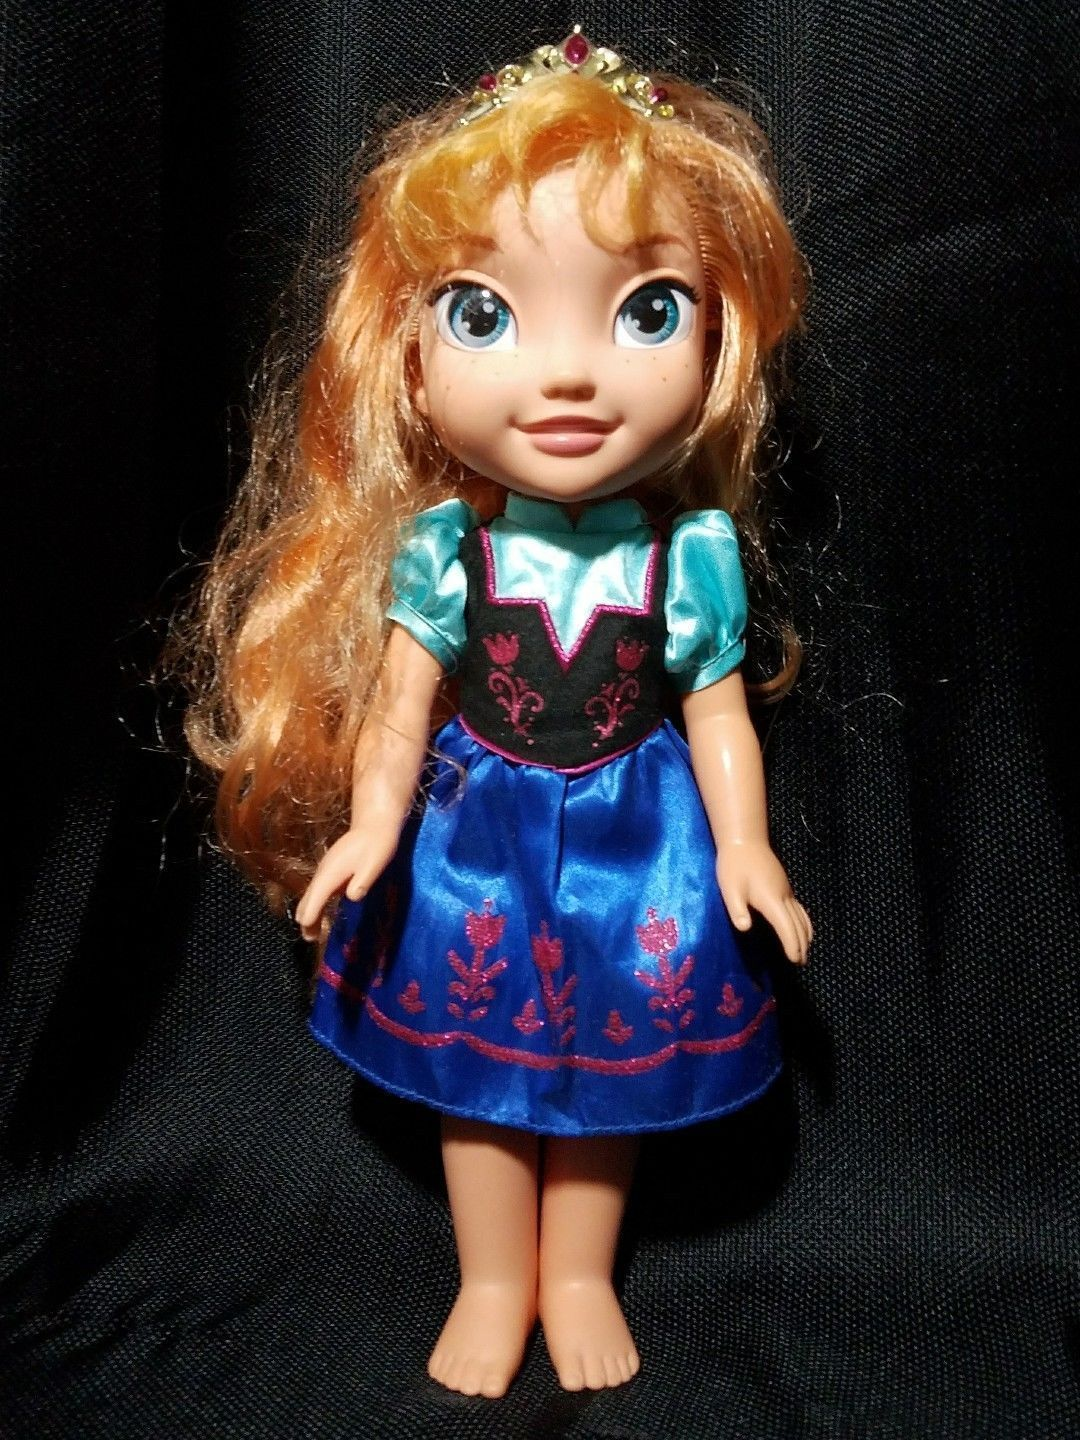 Disney Tollytots Limited Anna Doll From Frozen 15 inches